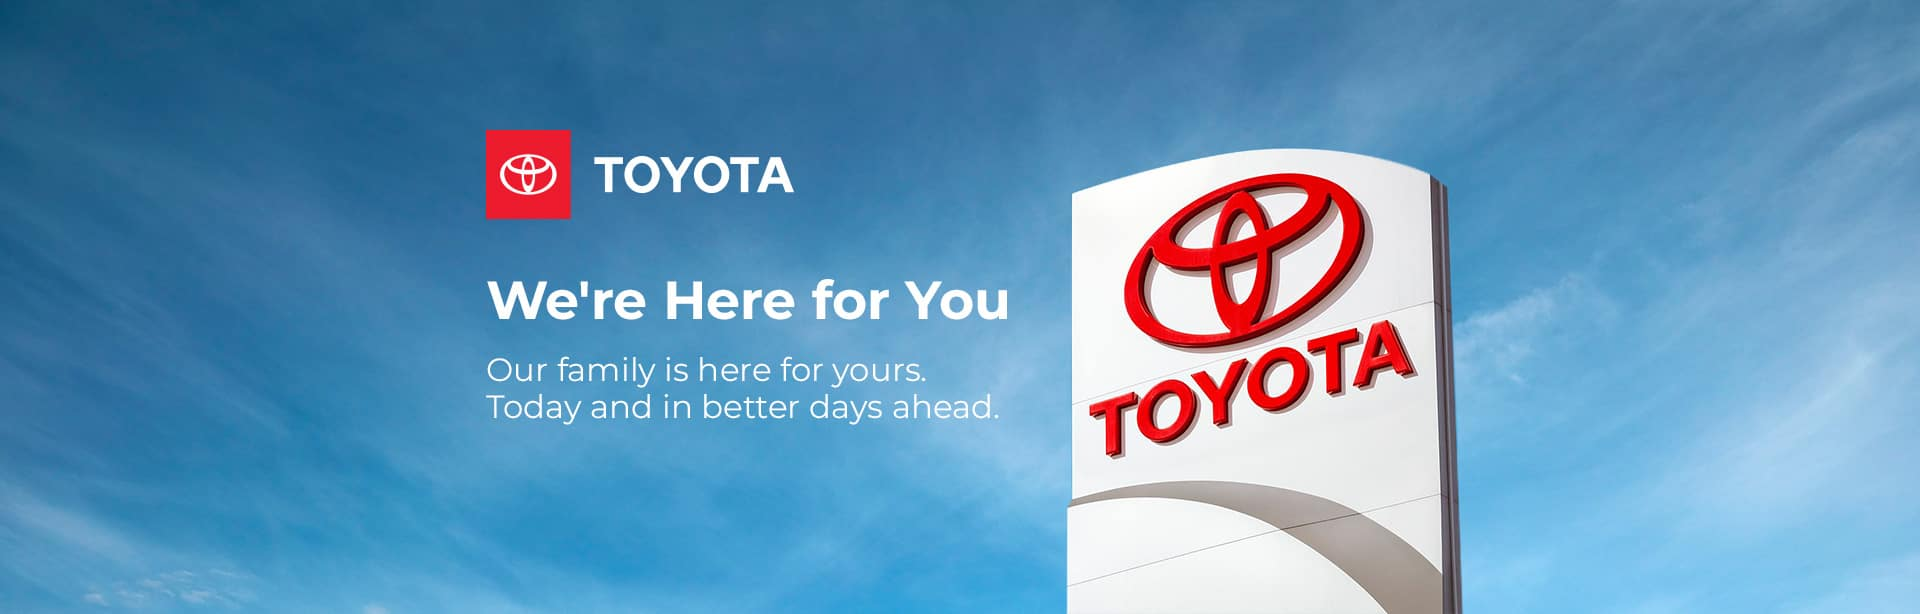 Toyota of Merrillville We're Here For You